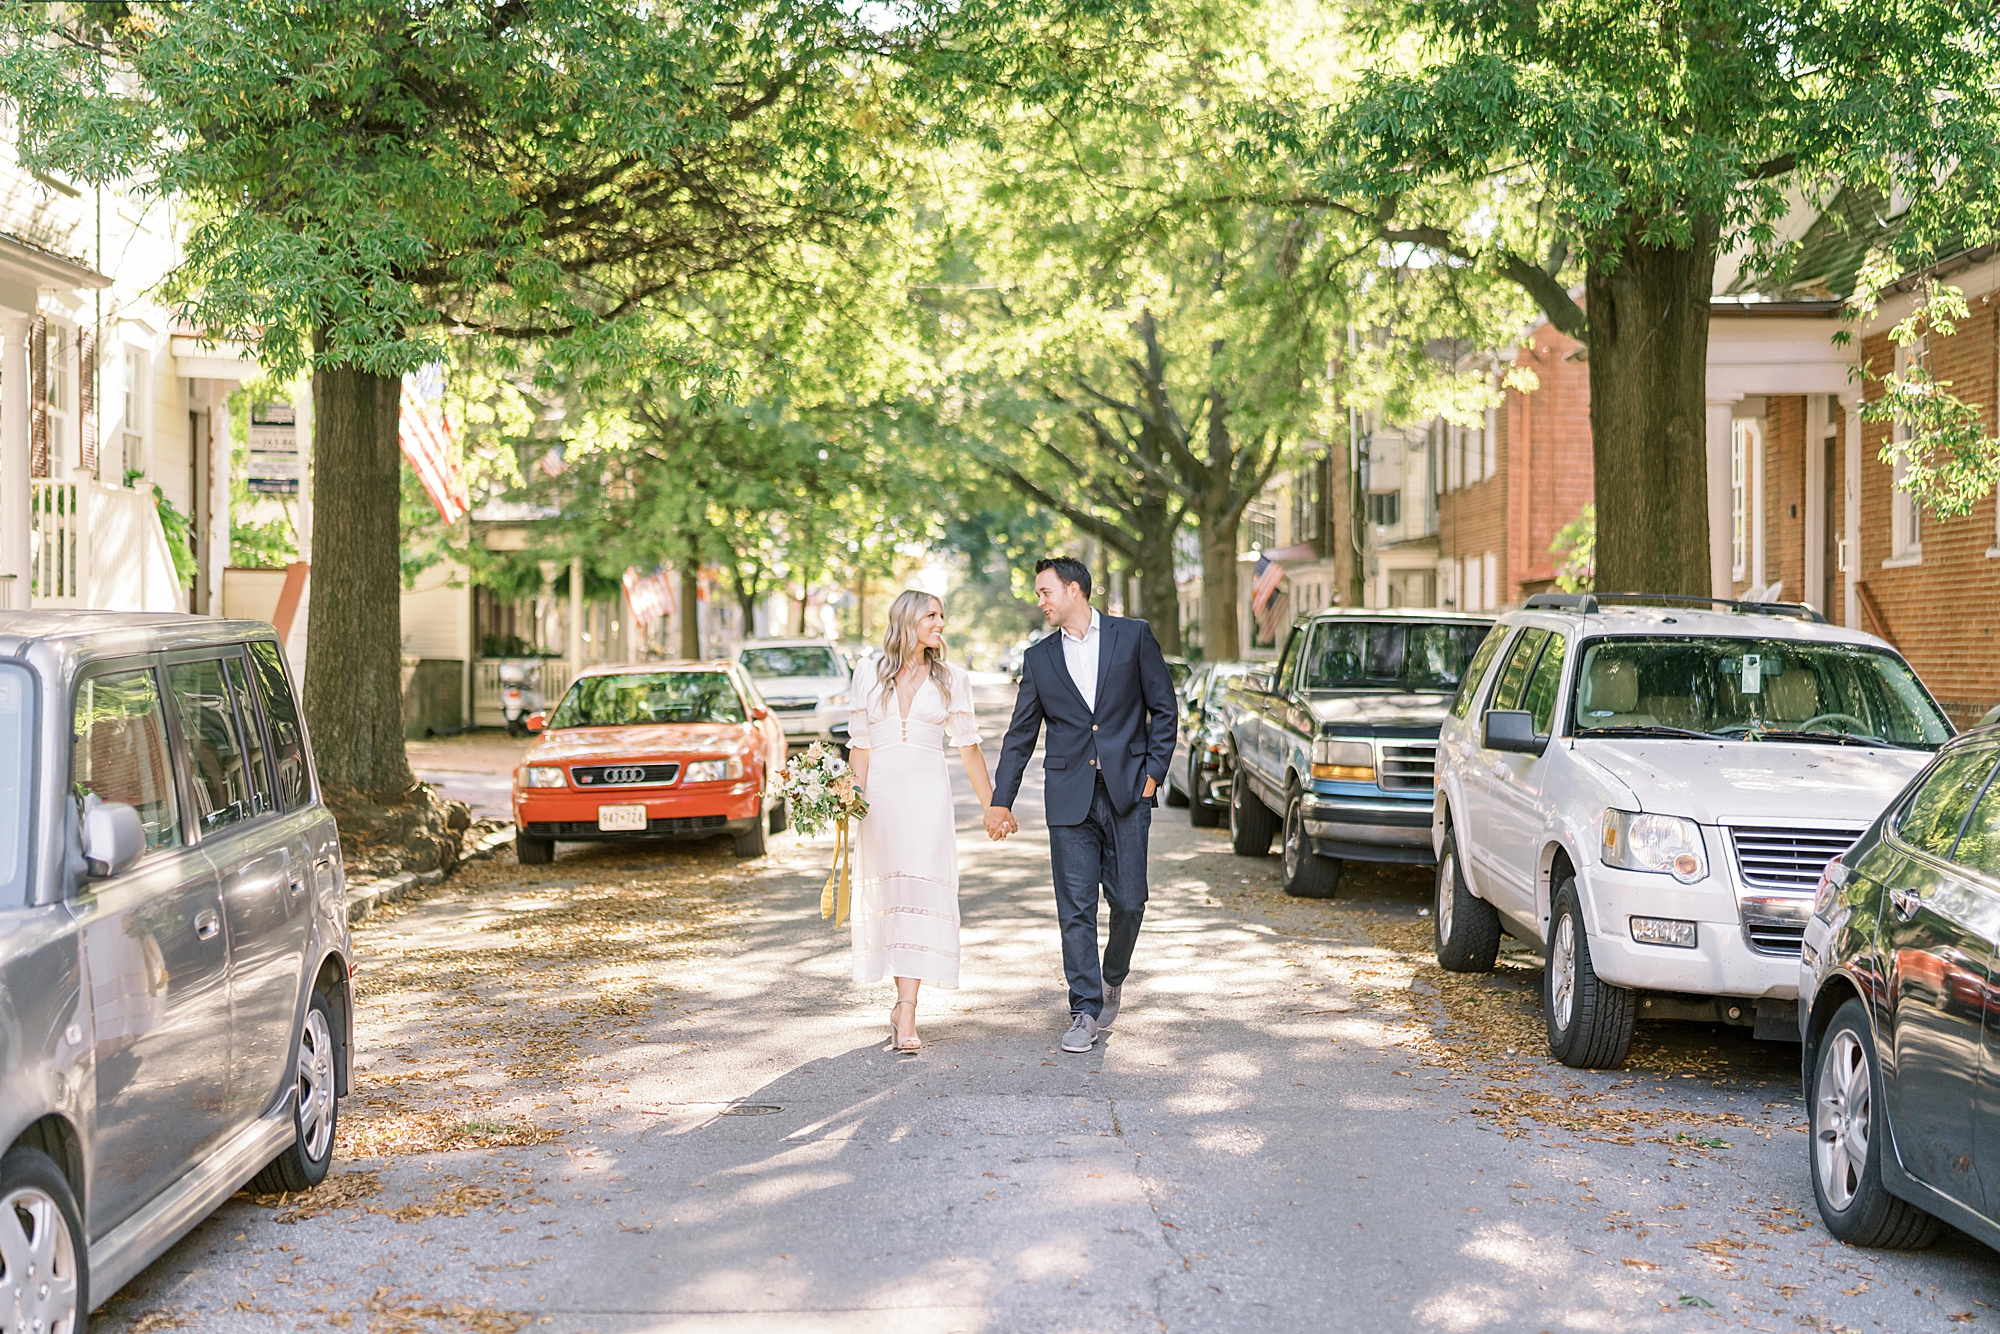 Couple poses for engagement photos in the streets of downtown Annapolis